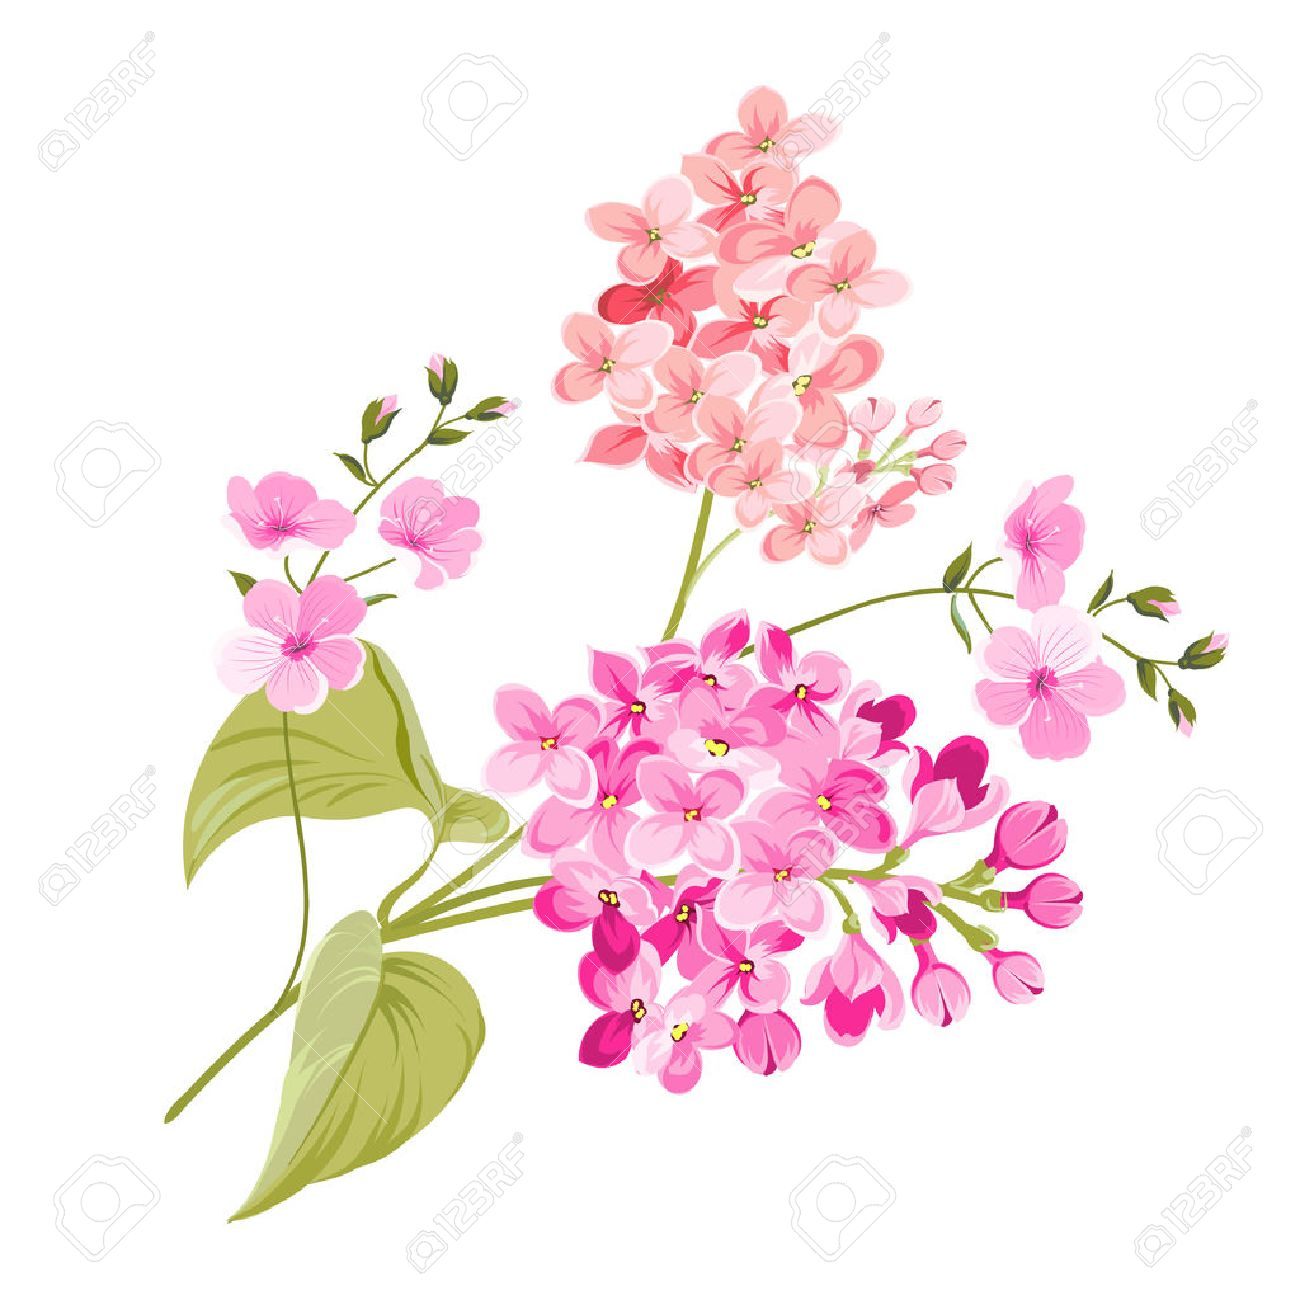 Purple lilac flowers of syringa isolated on white background purple lilac flowers of syringa isolated on white background spring flowers vector illustration mightylinksfo